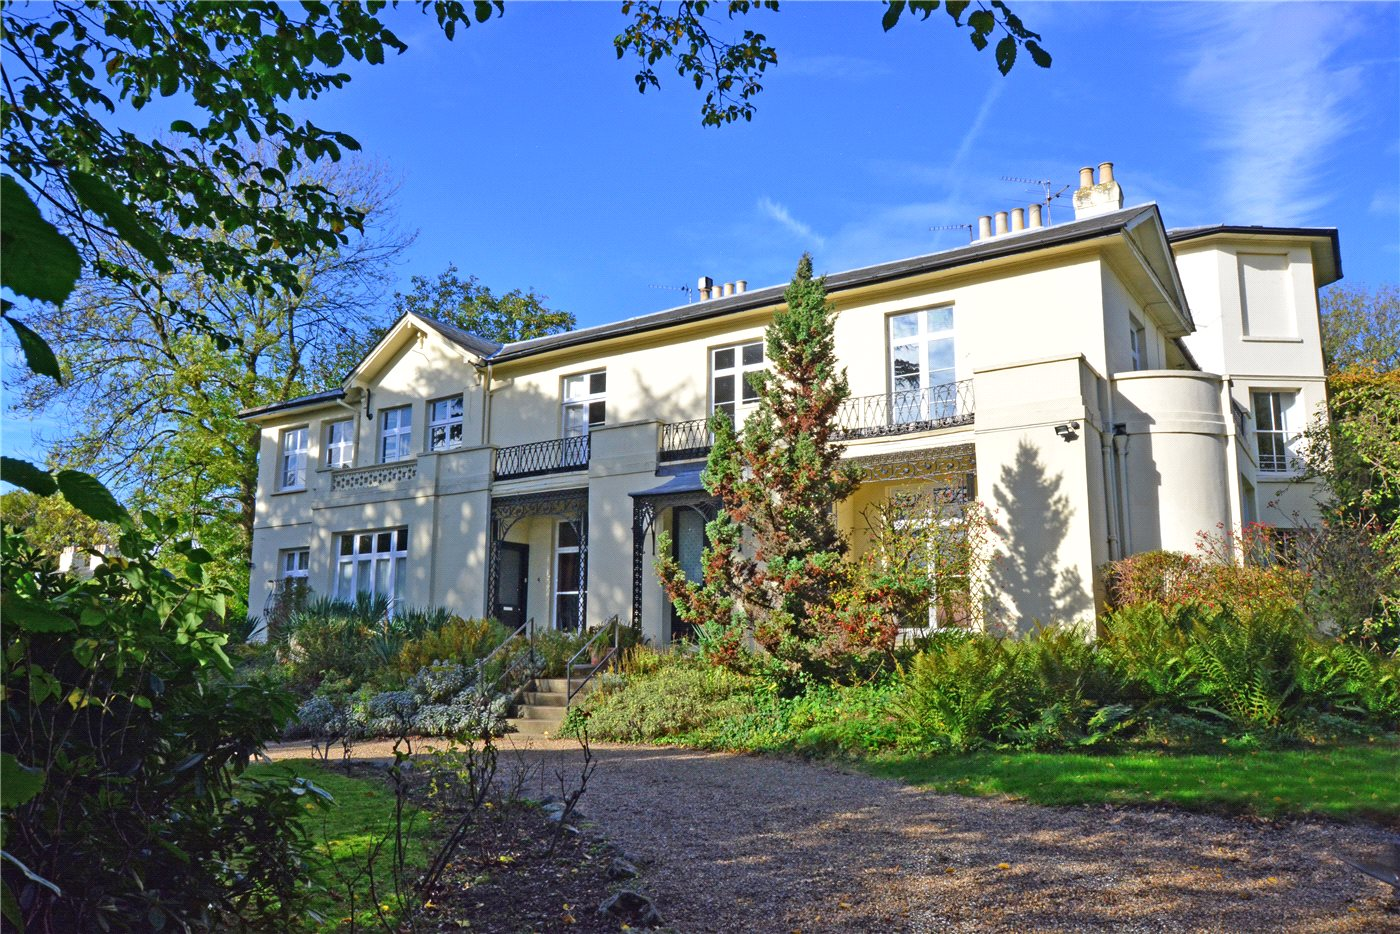 2 Bedroom Property For Sale In Priory Lodge 15 Priory